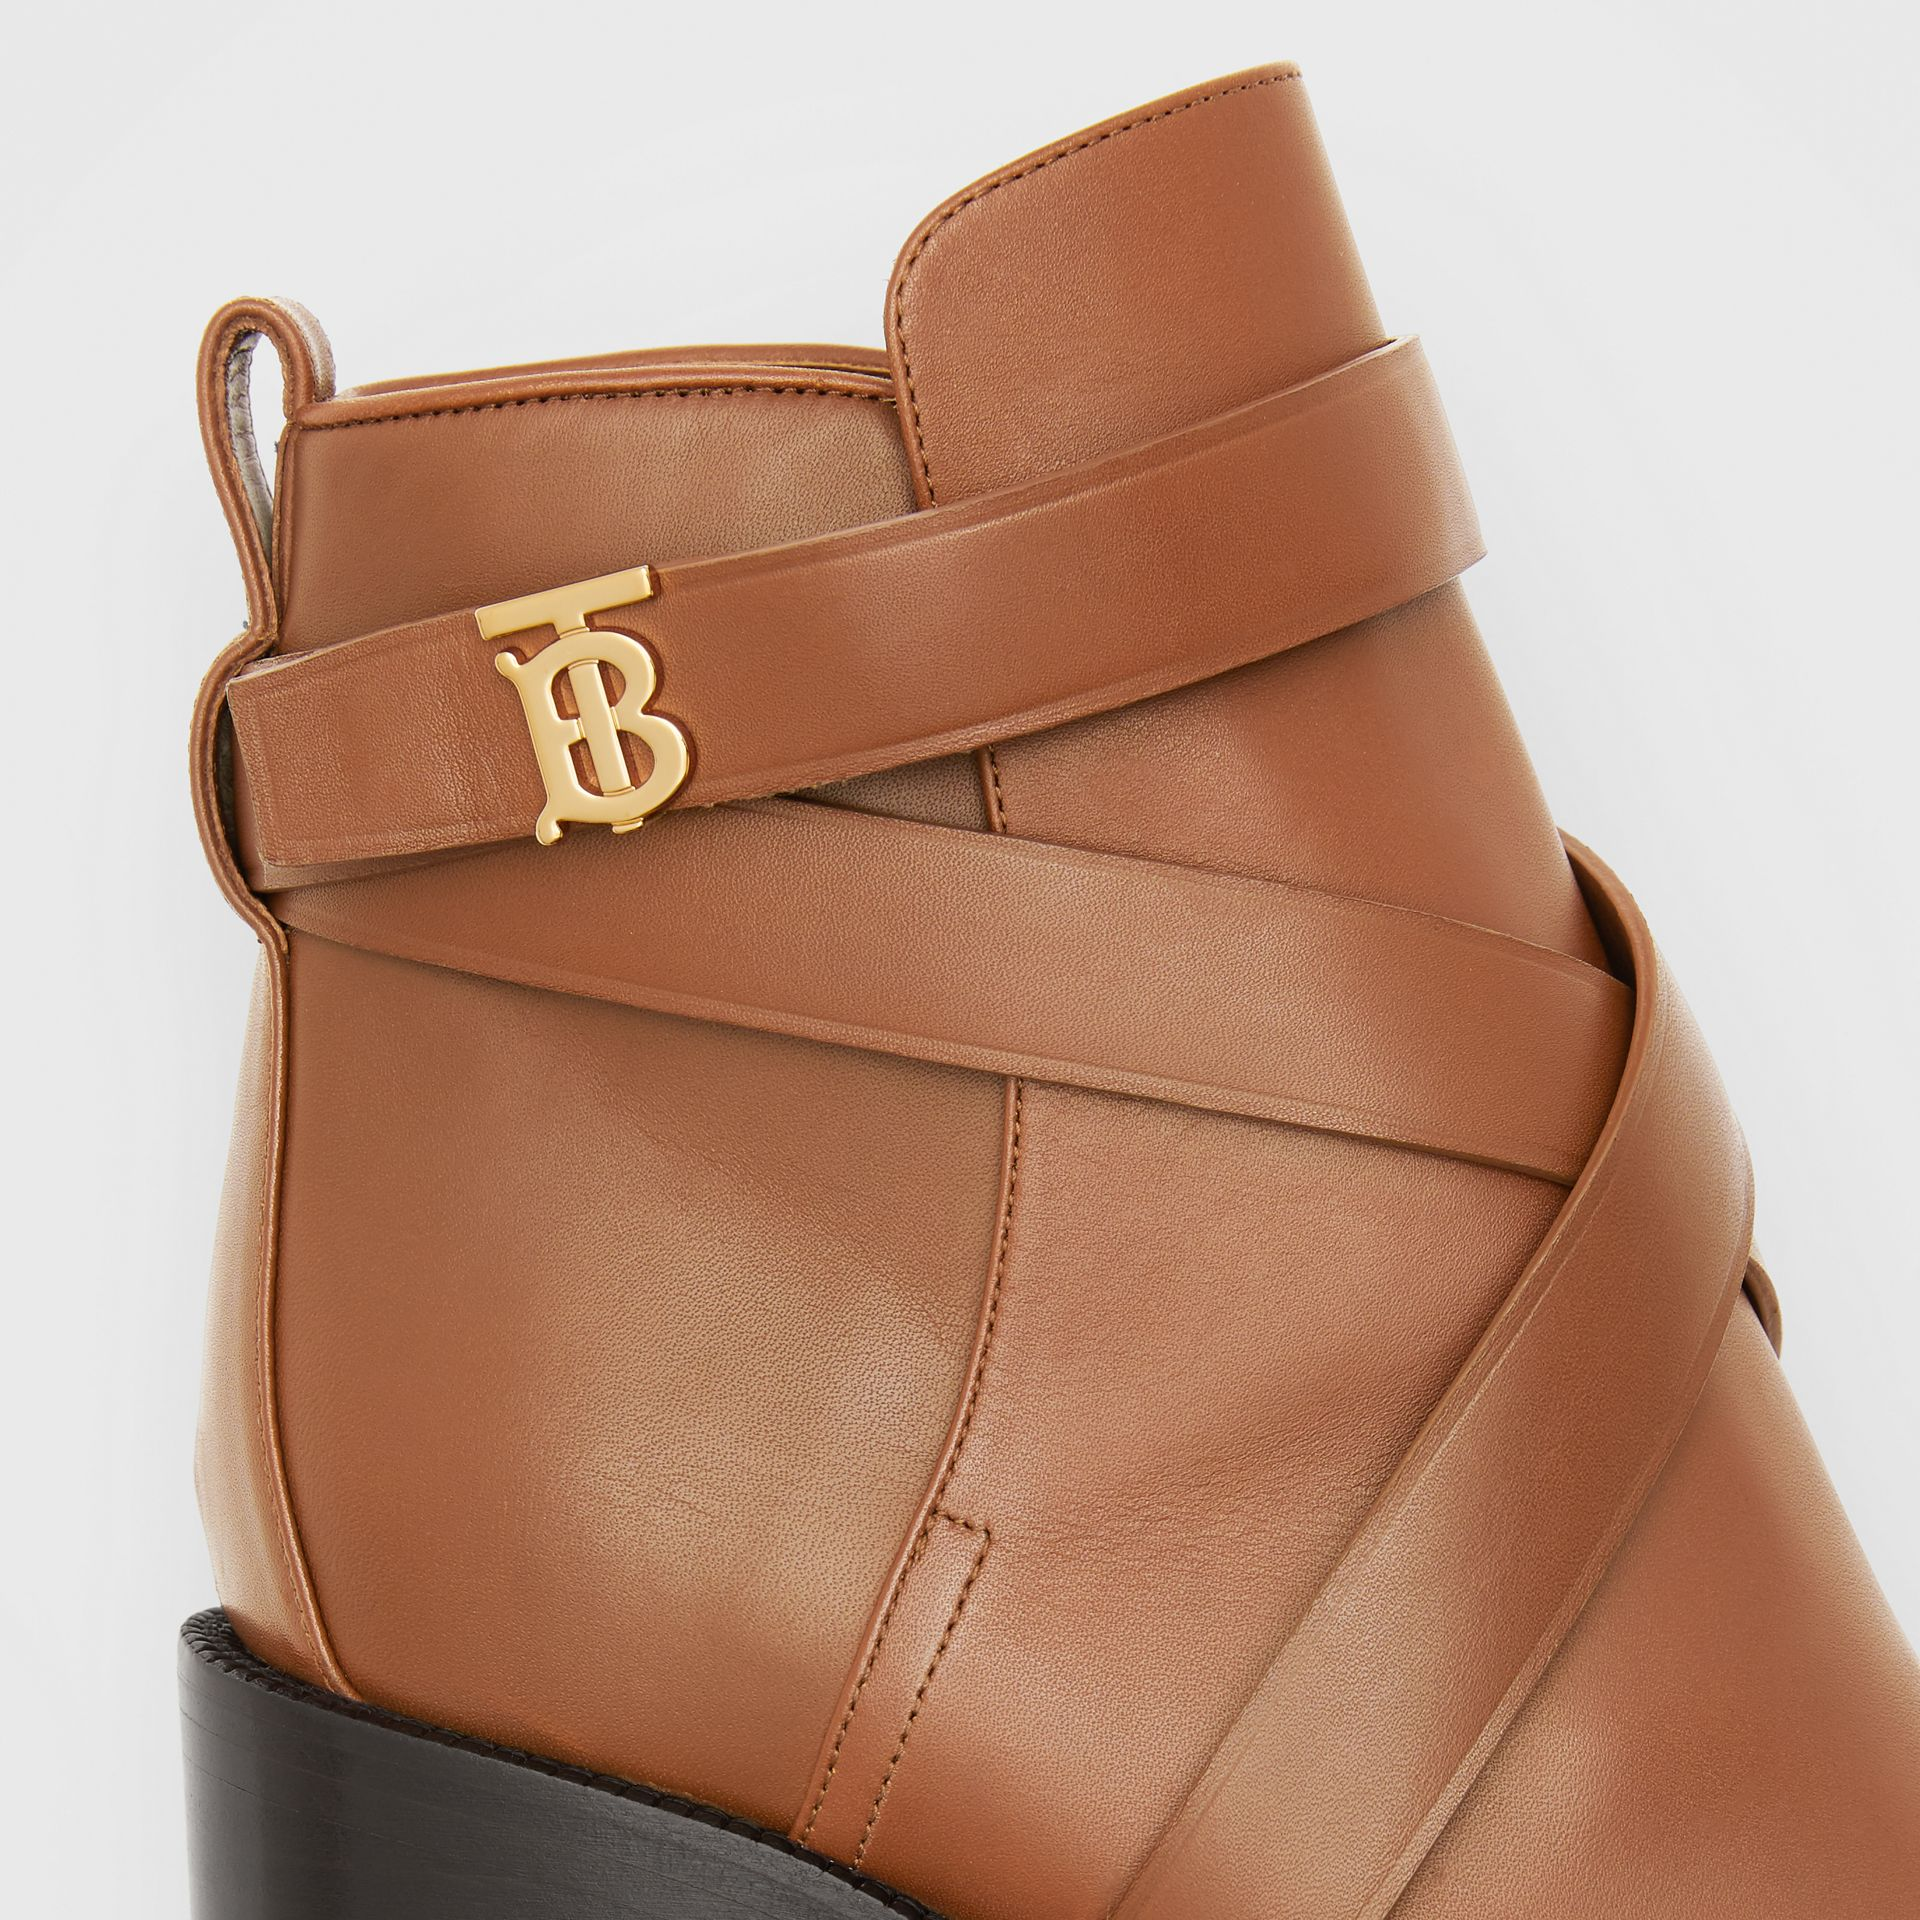 Bottines en cuir Monogram (Hâle) - Femme | Burberry Canada - photo de la galerie 1